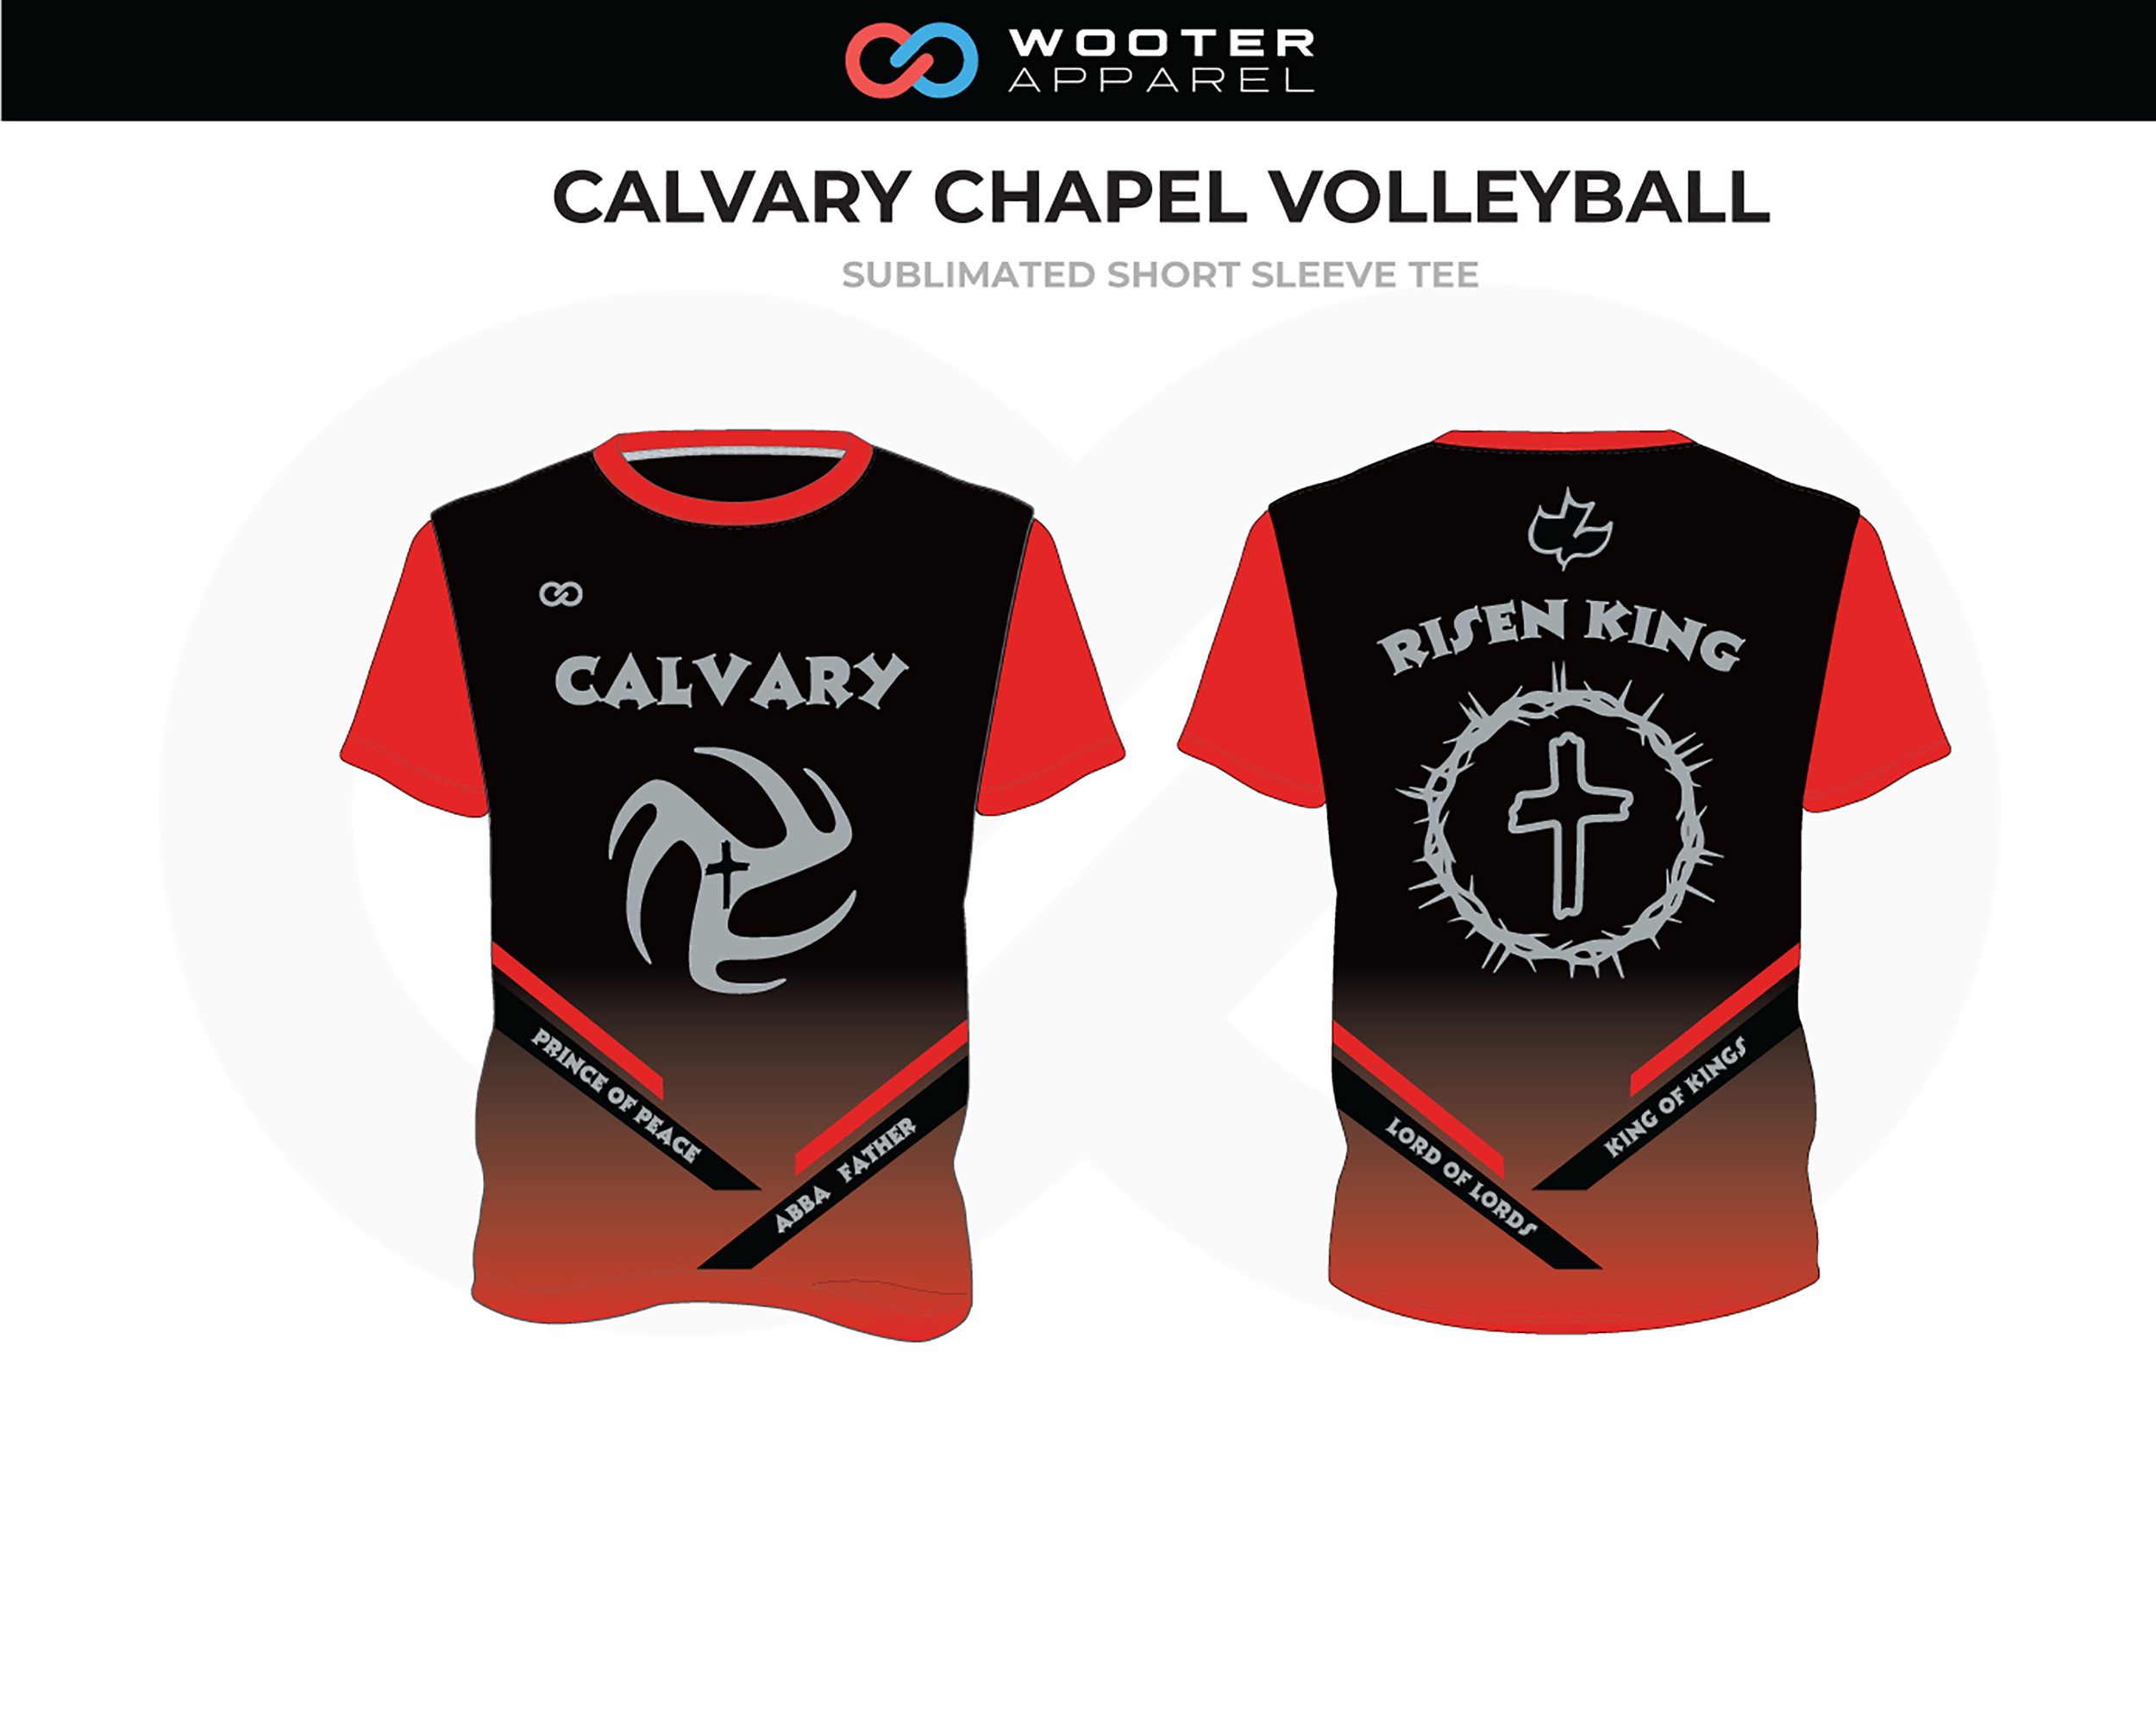 CALVARY CHAPEL Red Black Gray Volleyball Short Sleeve Tee